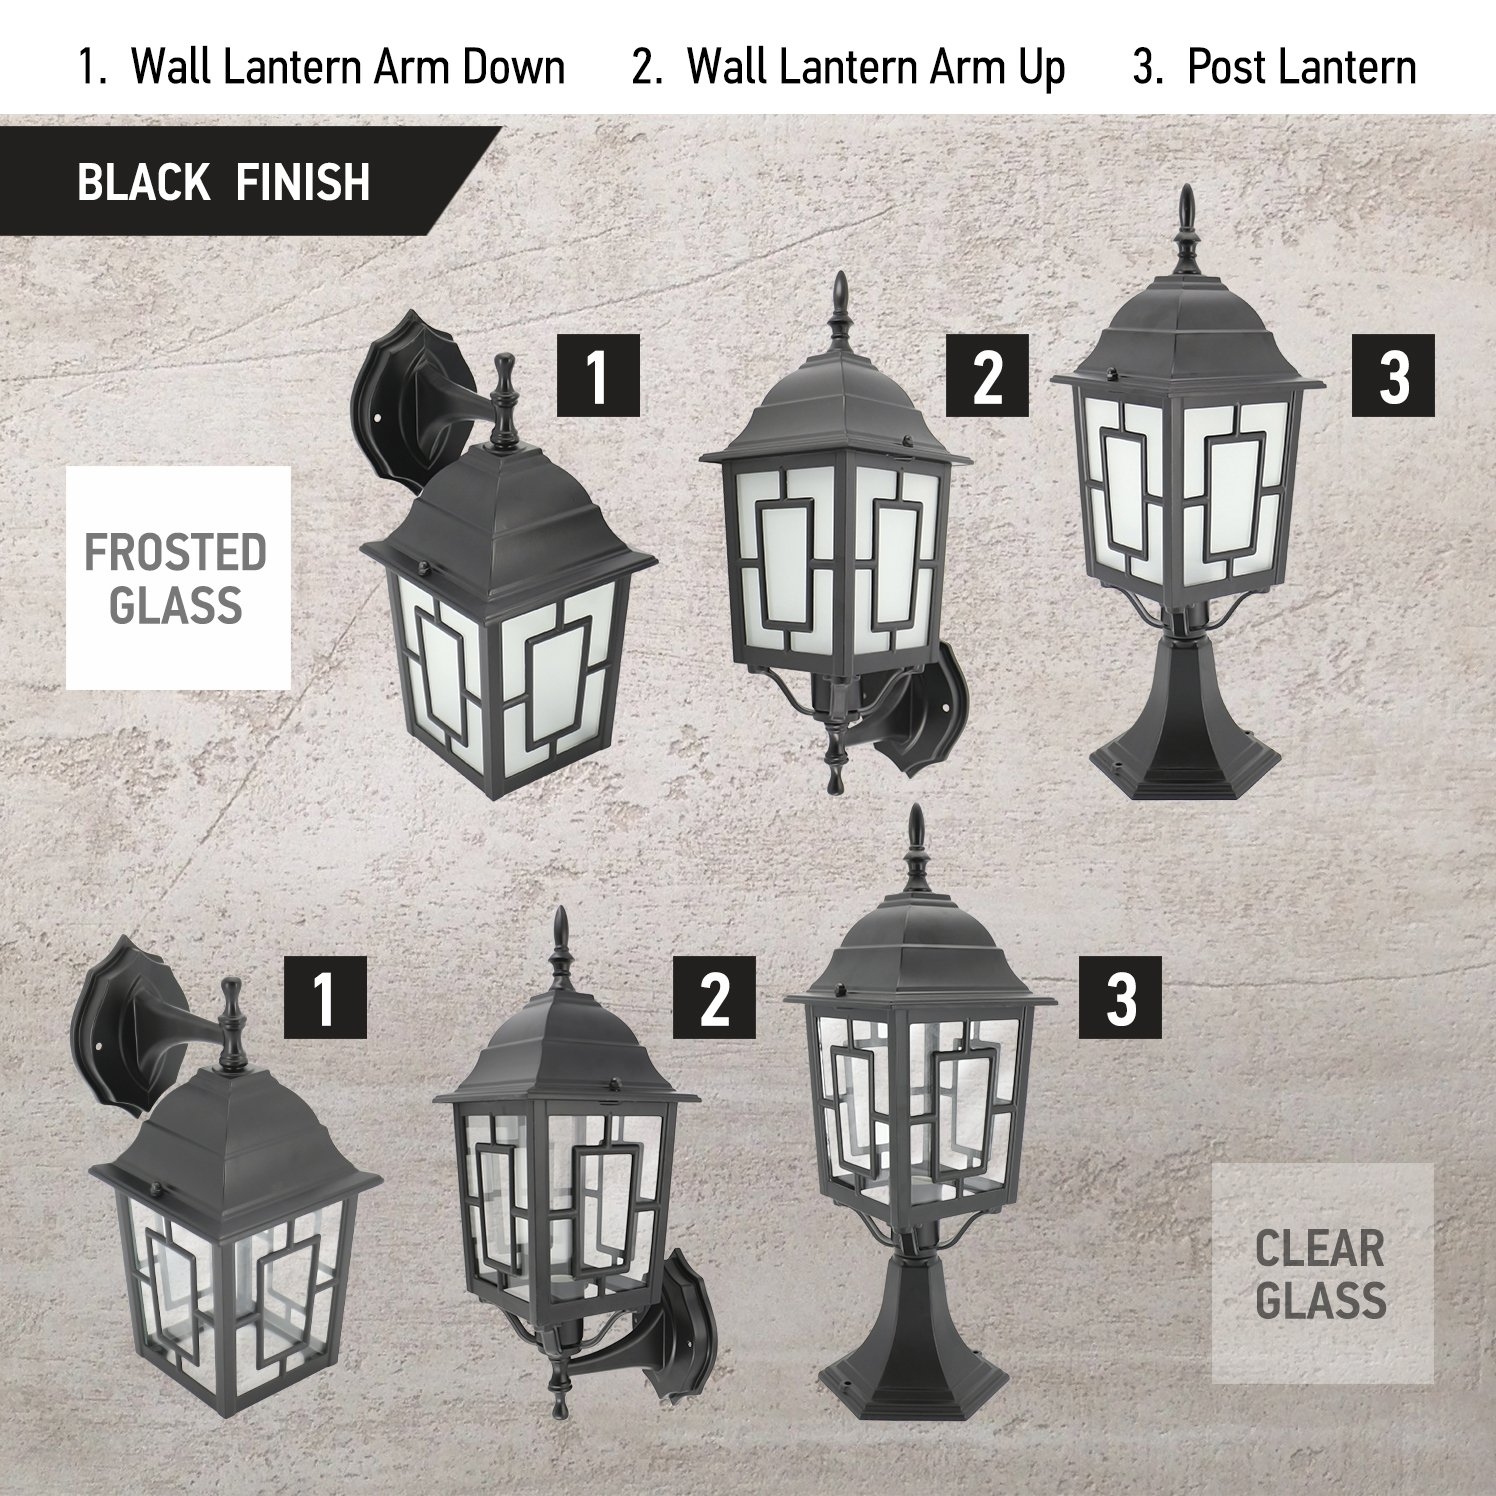 IN HOME 1-Light Outdoor Garden Post Lantern L05 Lighting Fixture, Traditional Post Lamp Patio with One E26 Base, Water-Proof, Black Cast Aluminum Housing, Frosted Glass Panels, (2 Pack) ETL Listed by IN HOME (Image #6)